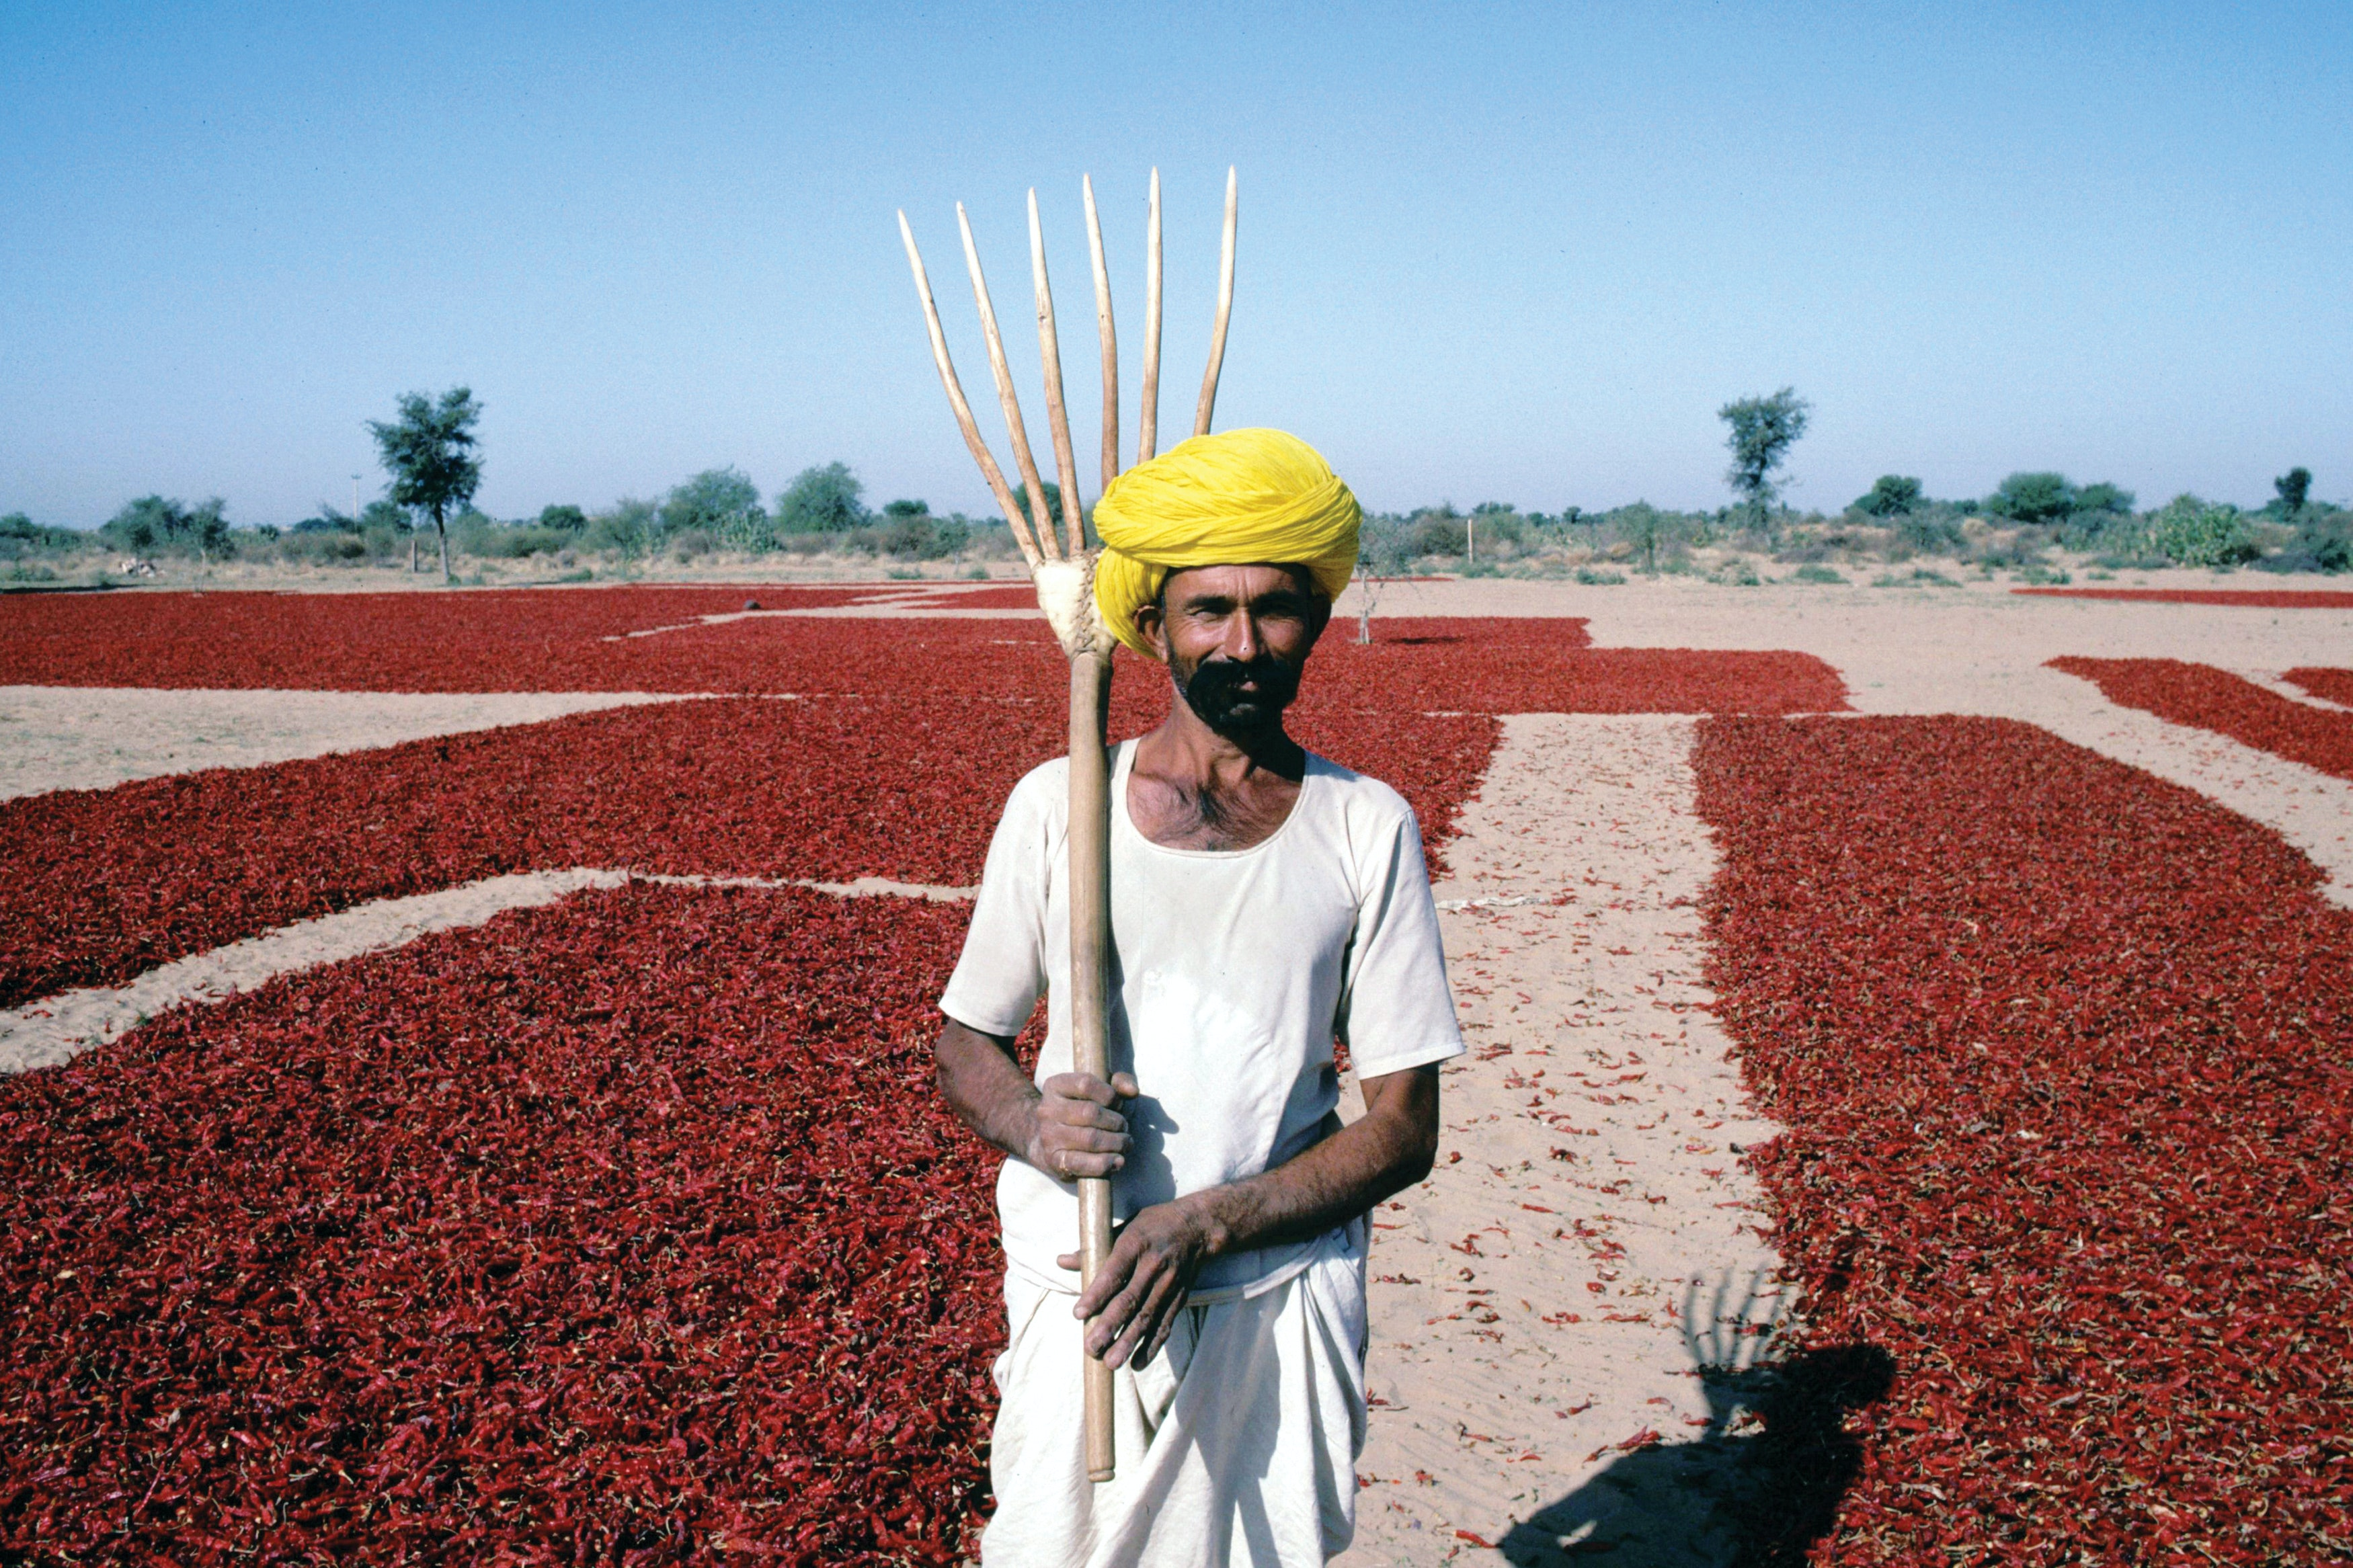 Things are heating up in India. Photo credit: Bread for the World, CC BY-NC-ND